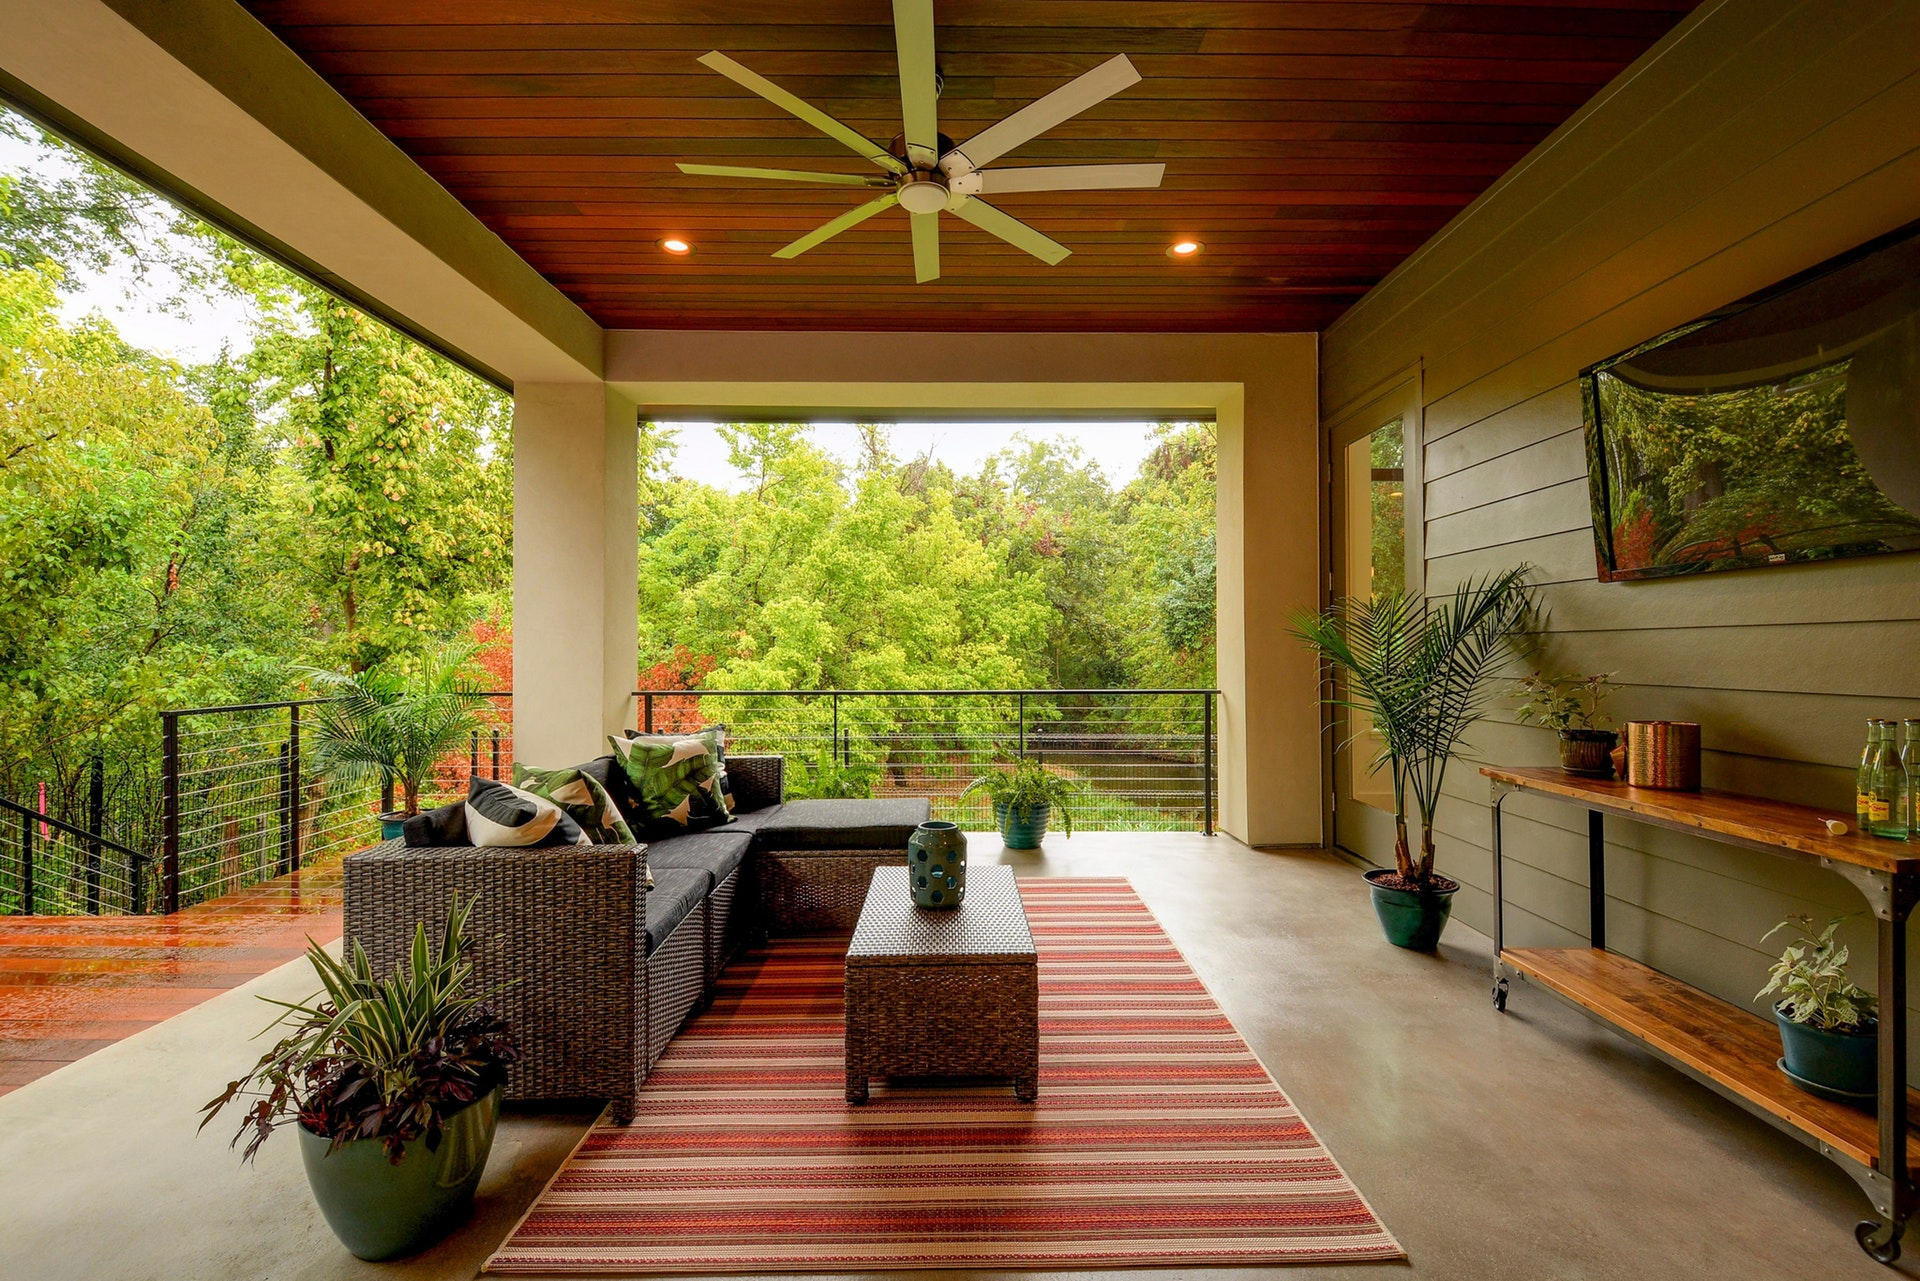 Another view of this modern, inviting living area ready for entertaining!